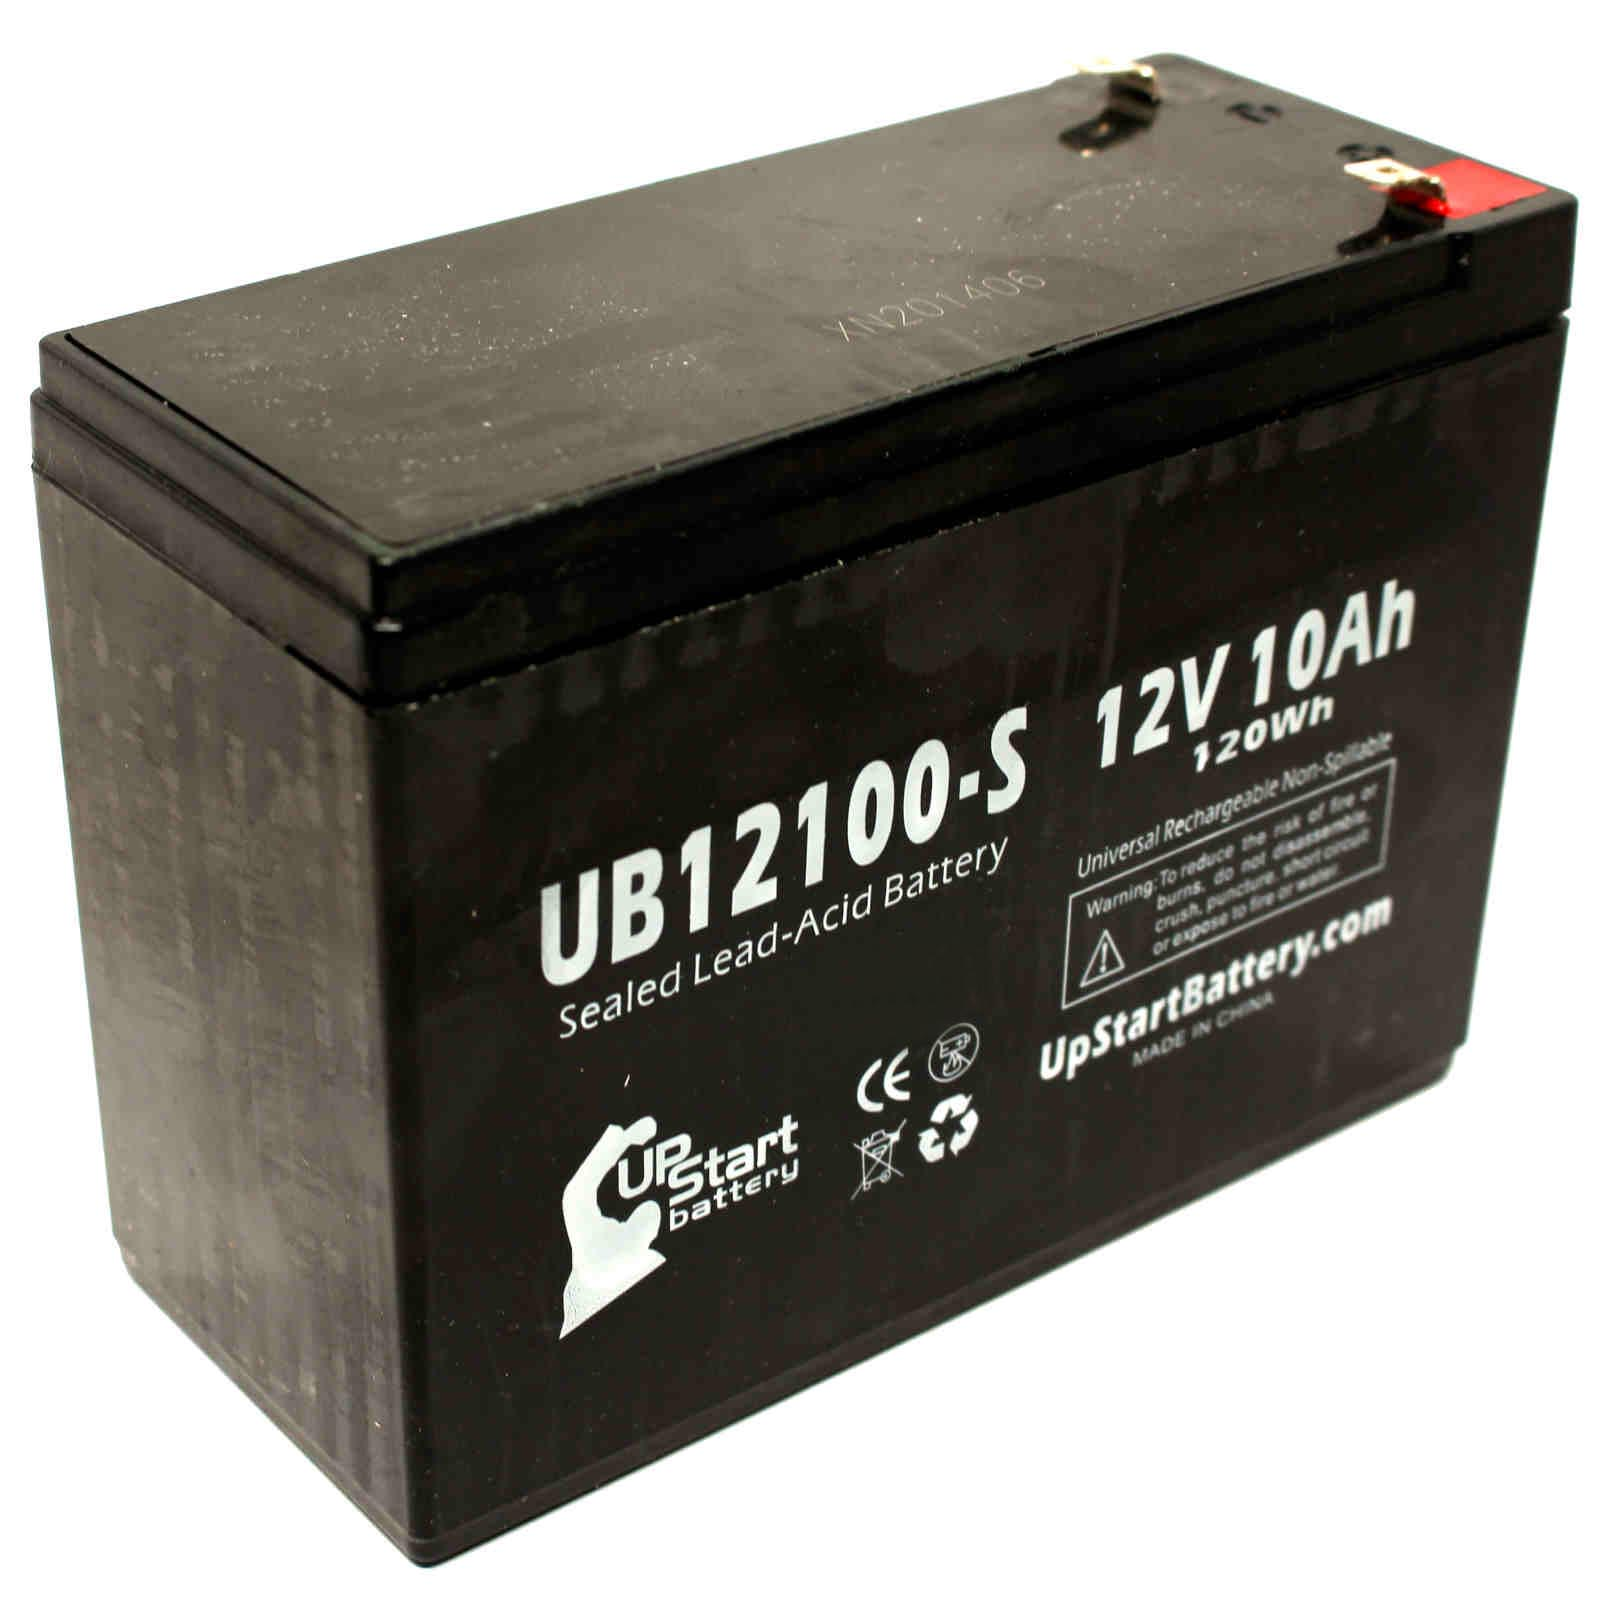 Neuton Mowers CE6 Battery Replacement -  UB12100-S Universal Sealed Lead Acid Battery (12V, 10Ah, 10000mAh, F2 Terminal, AGM, SLA)